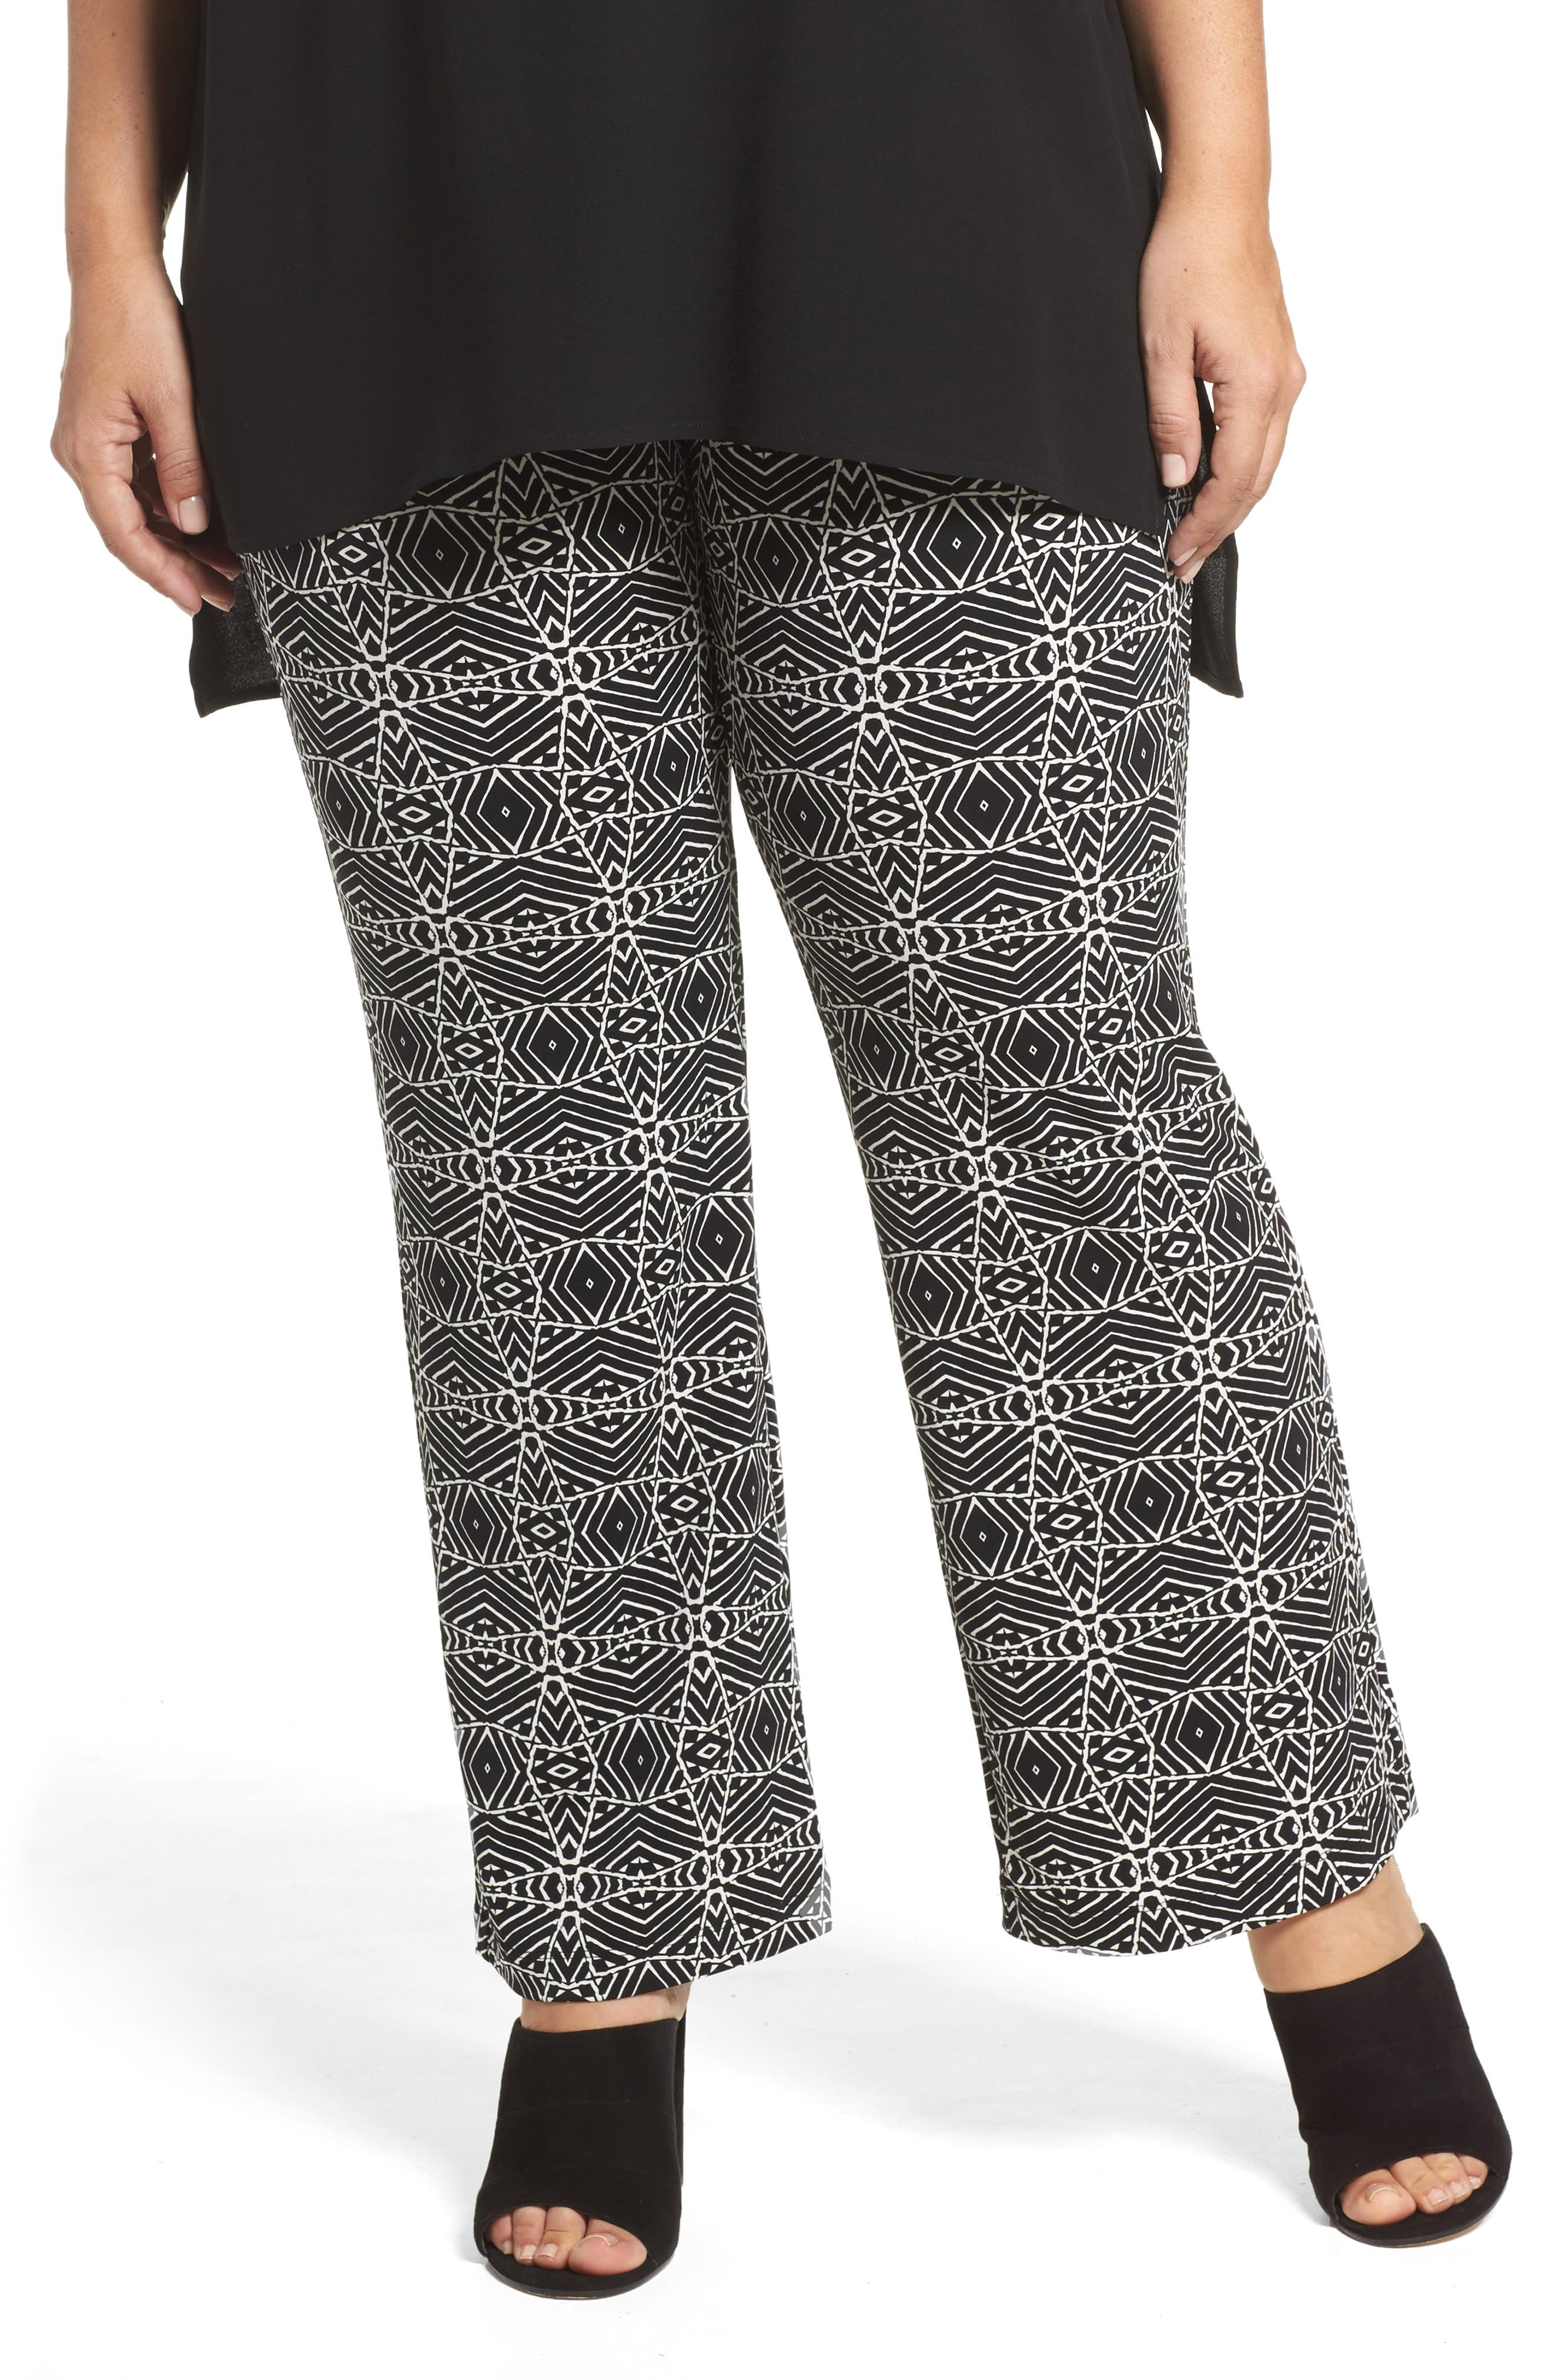 Alternate Image 1 Selected - Vince Camuto Graphic Print Pull-On Pants (Plus Size)